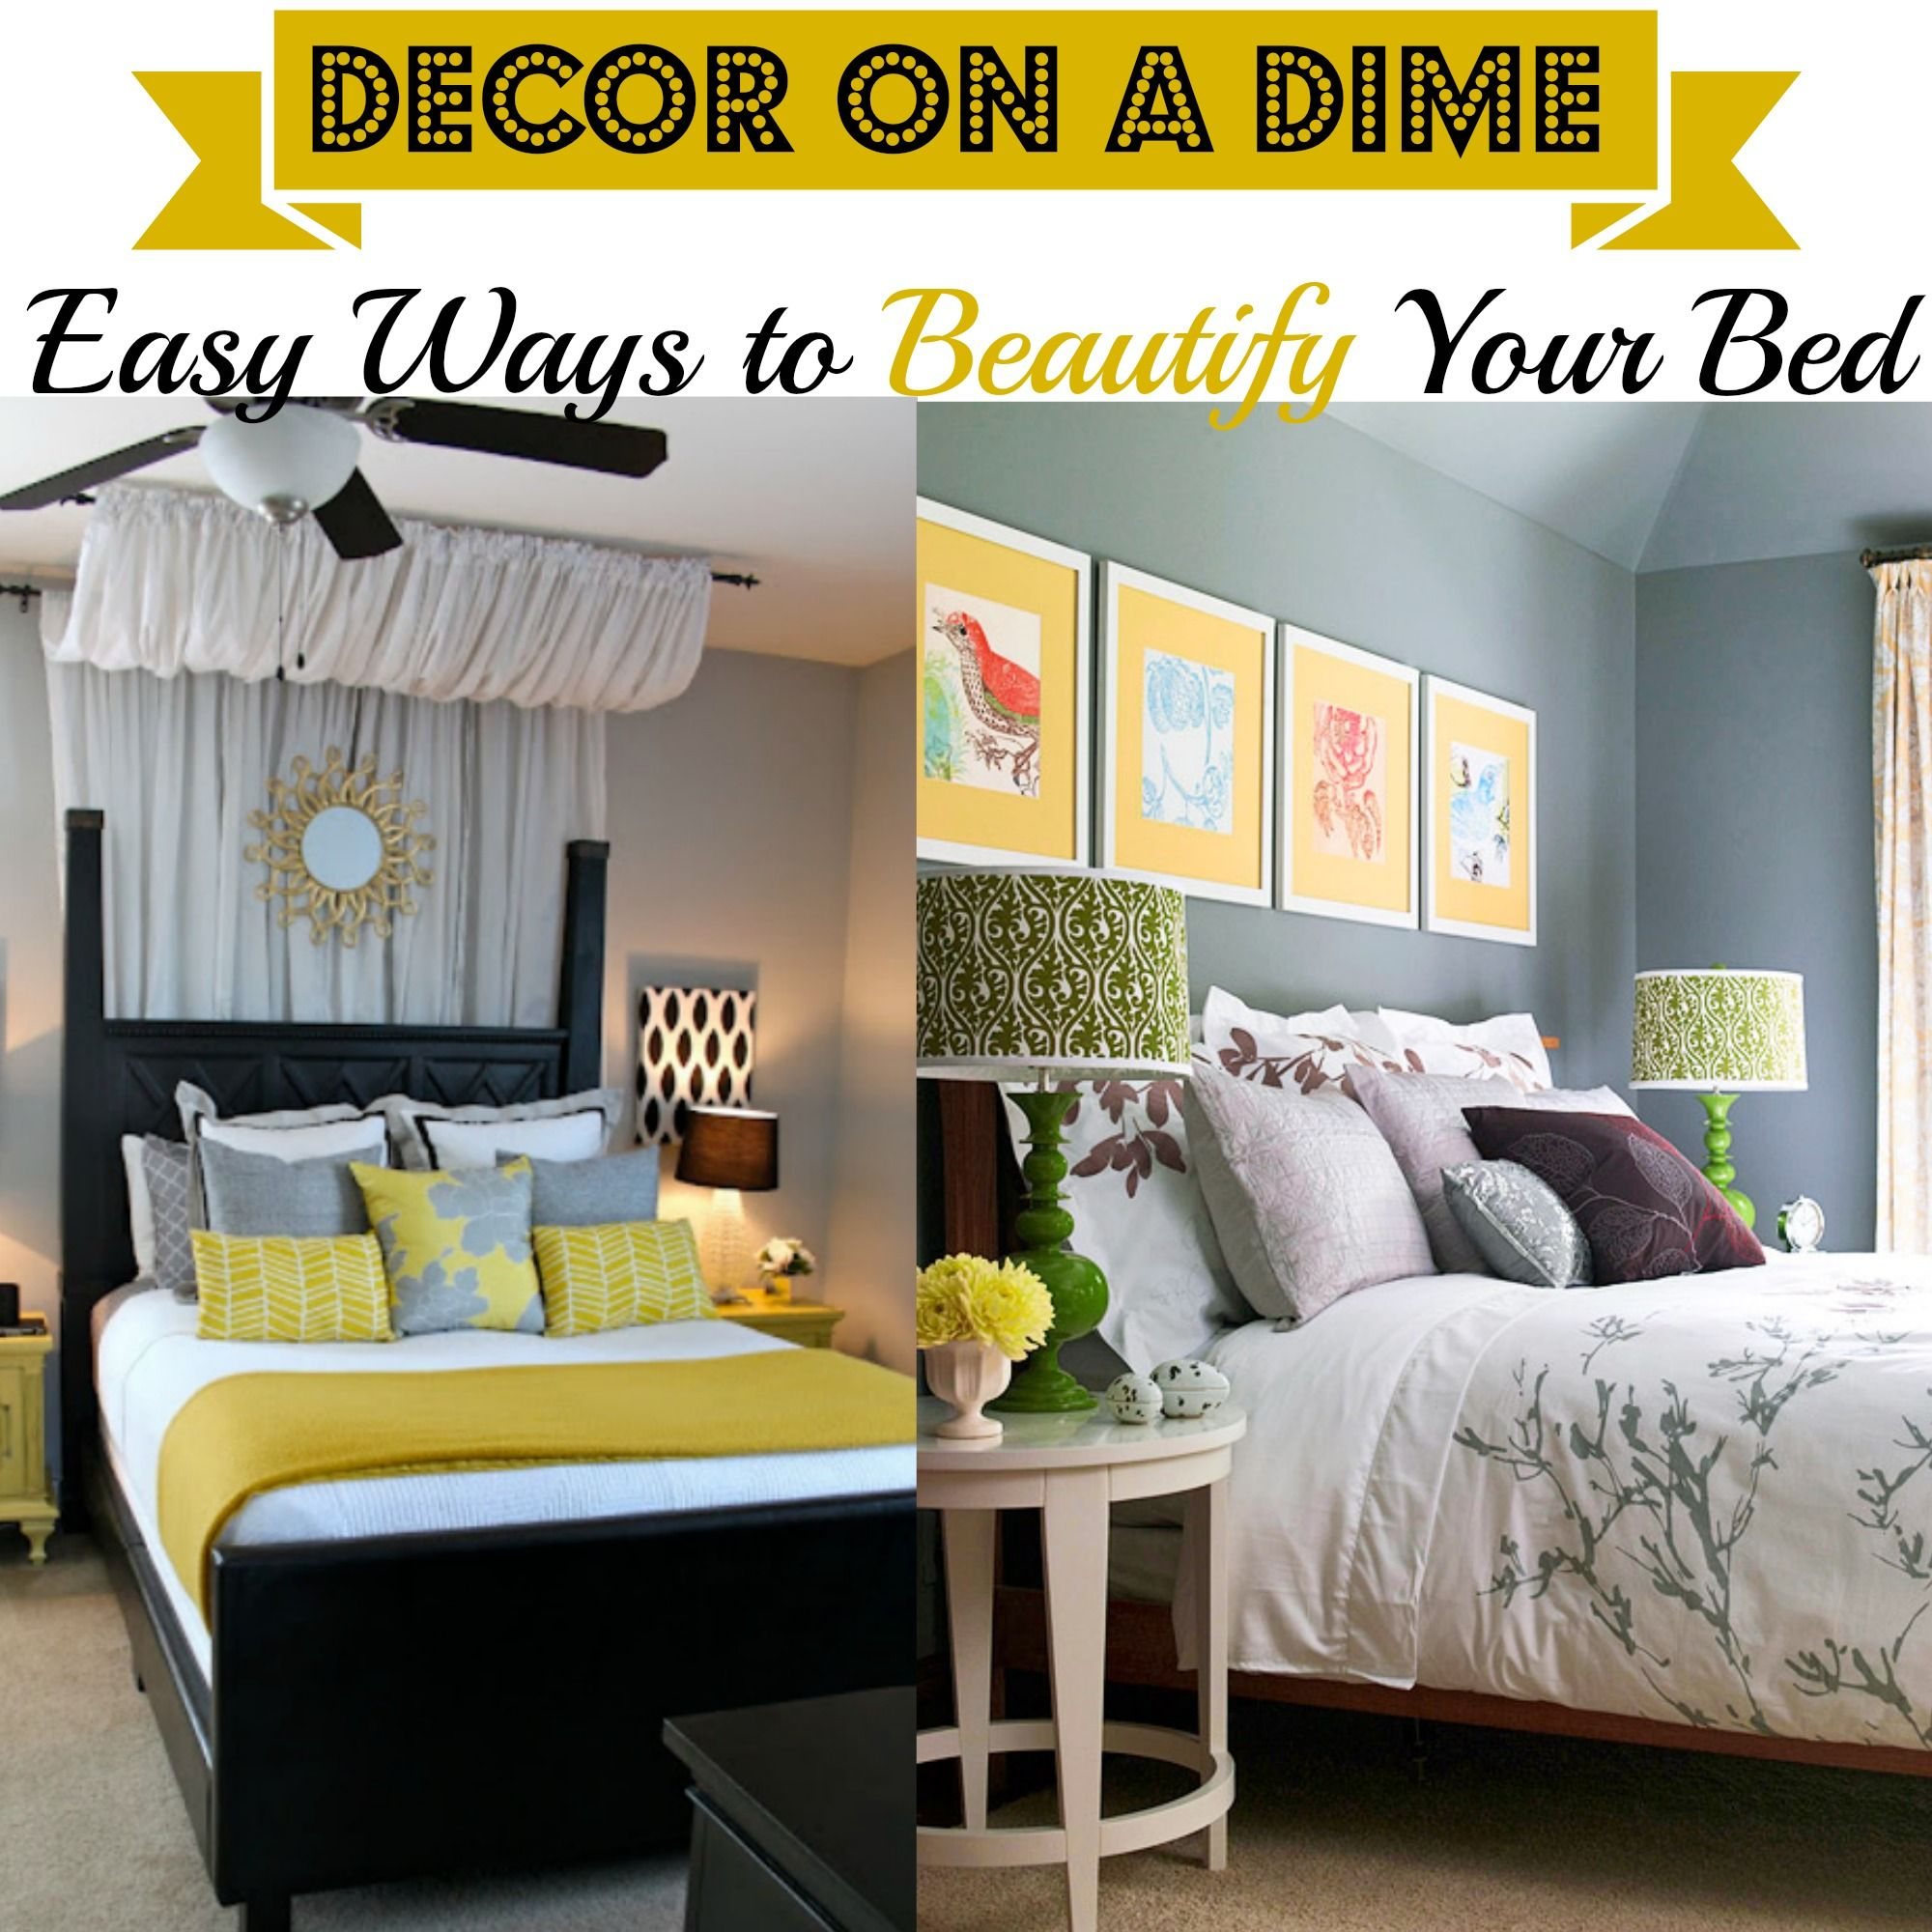 Design On A Dime Bedrooms - Bedroom | Awesome Home Design for You!